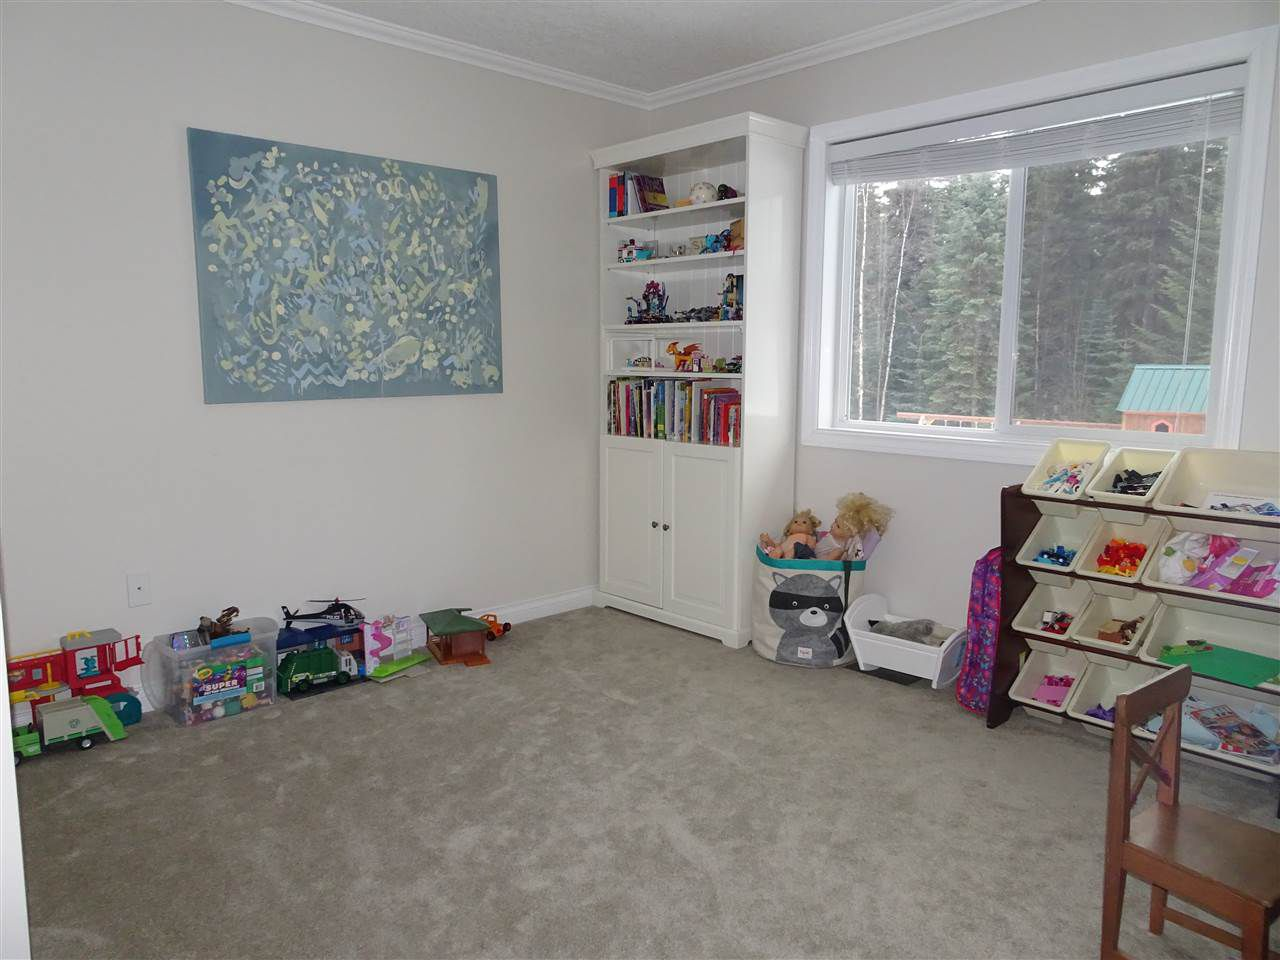 """Photo 11: Photos: 6447 BENCH Drive in Prince George: Nechako Bench House for sale in """"NORTH NECHAKO"""" (PG City North (Zone 73))  : MLS®# R2250059"""